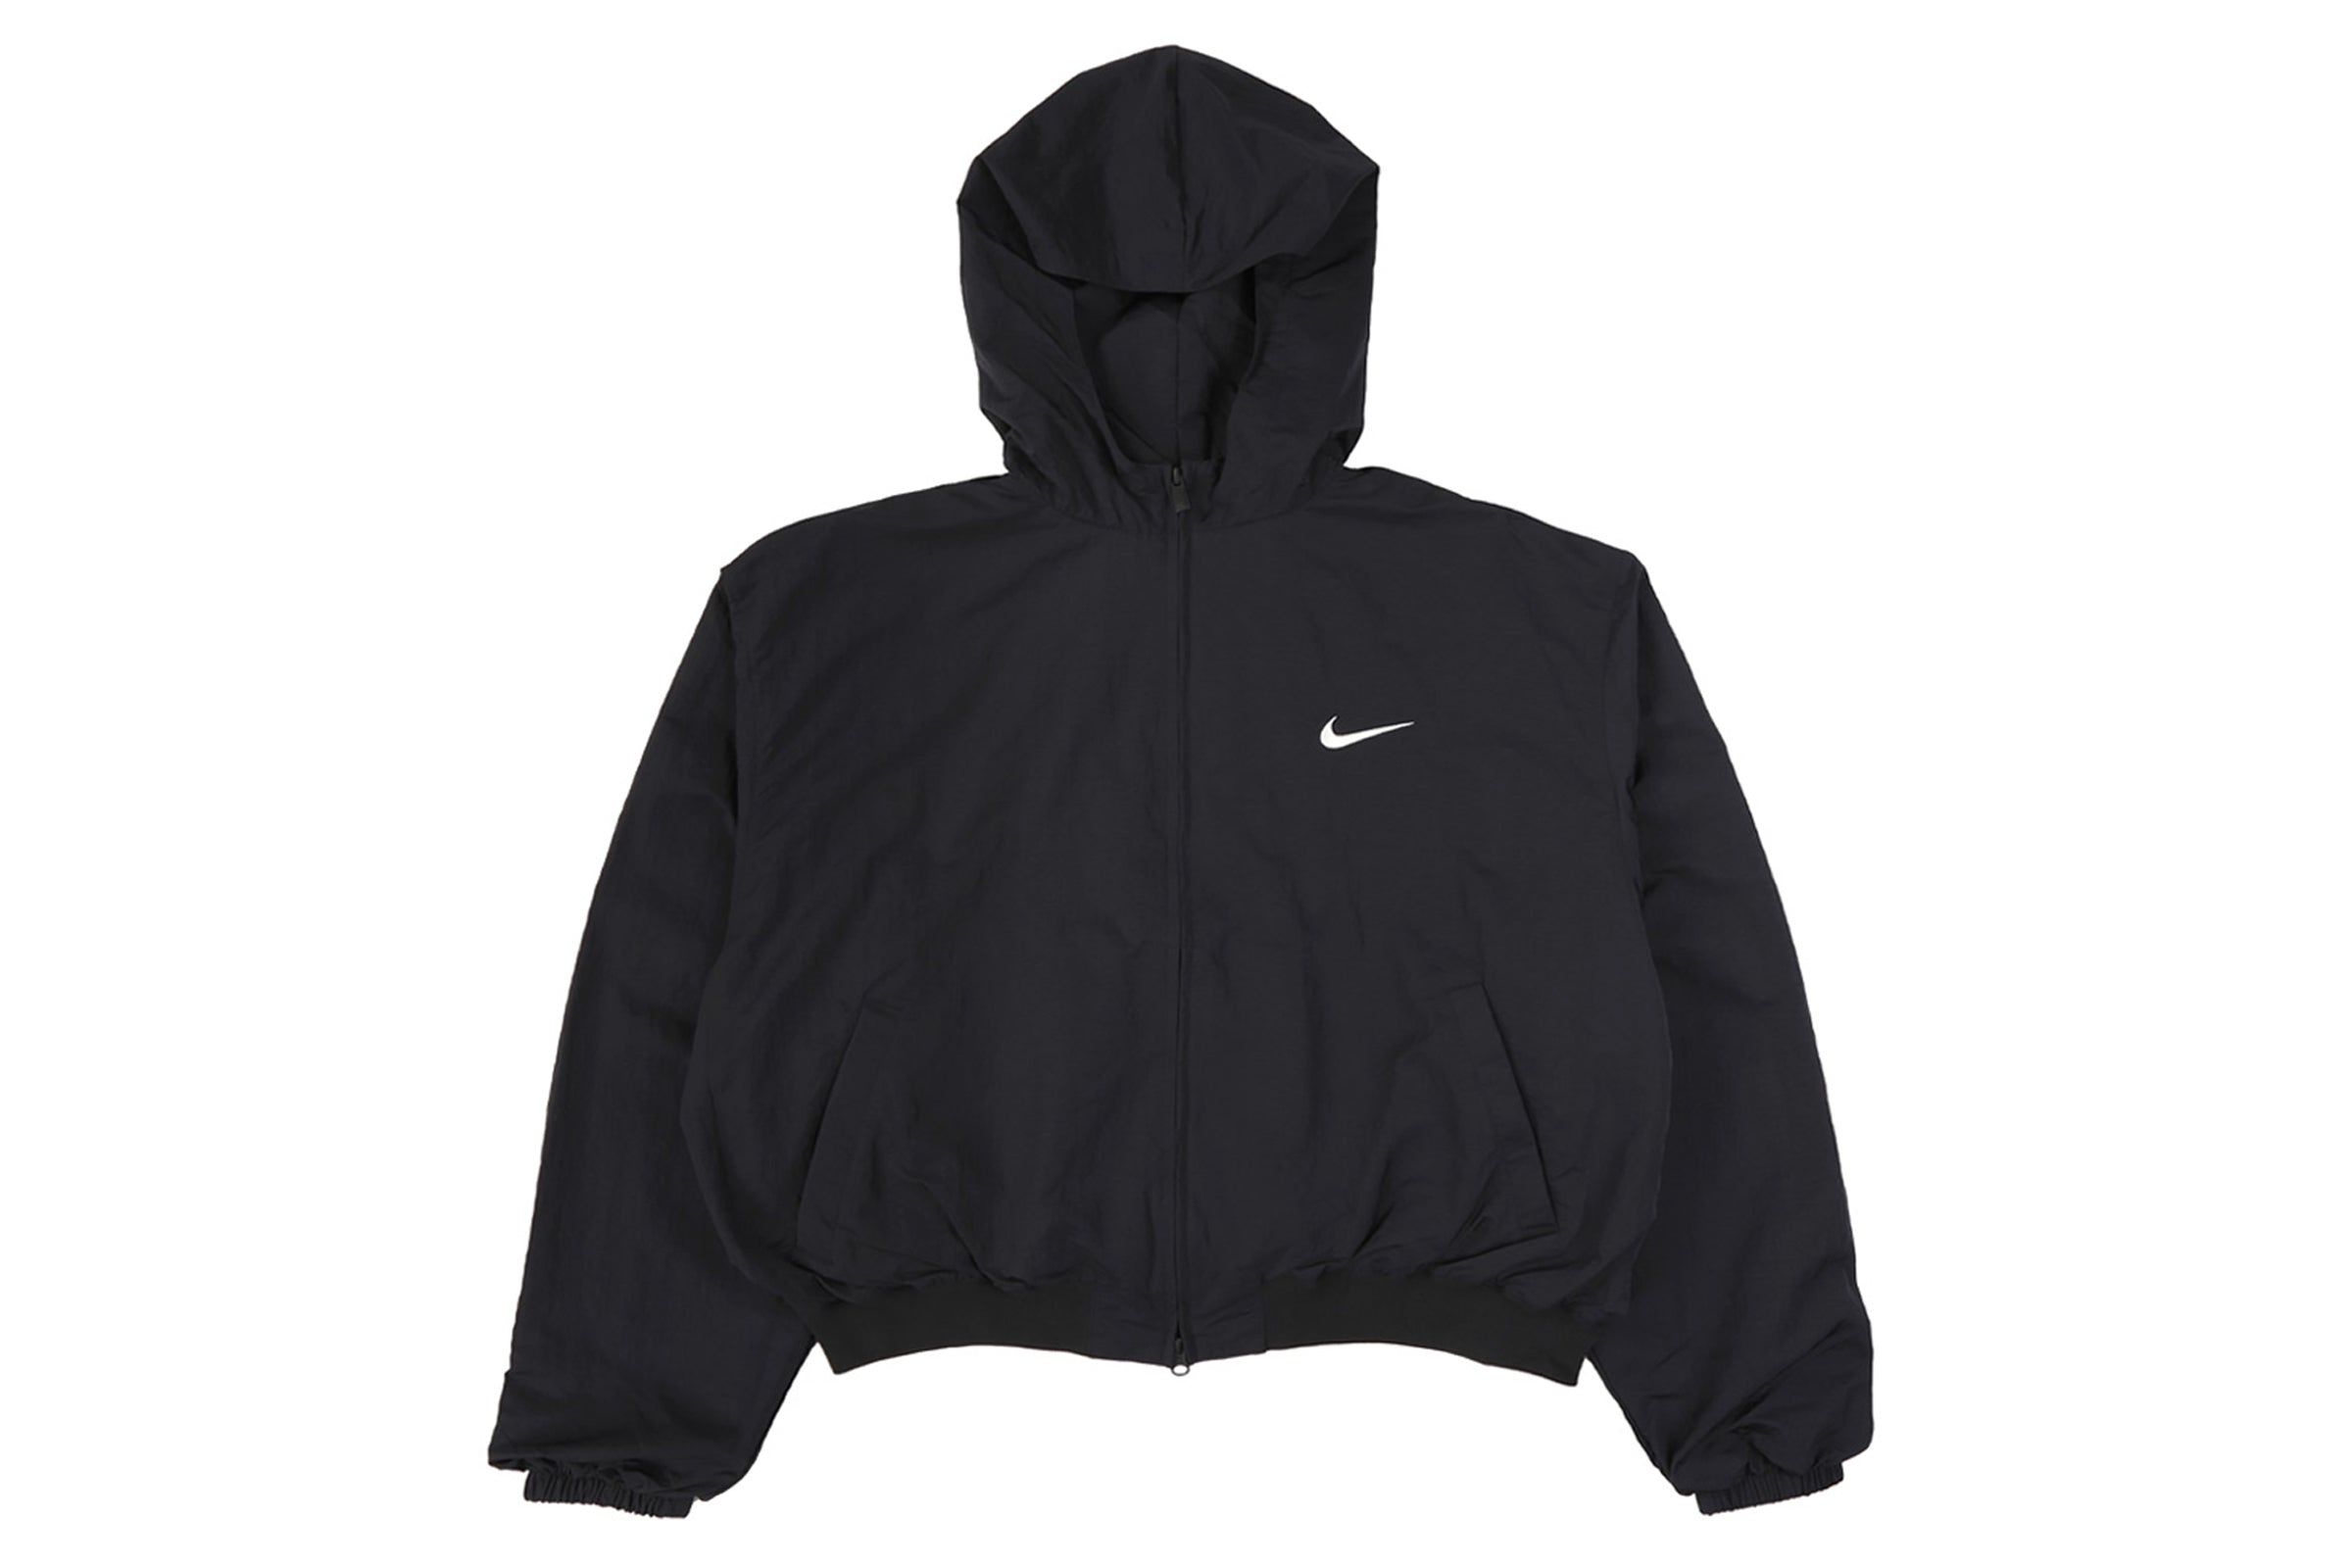 Nike NRG Bomber HD Jacket x Fear of God